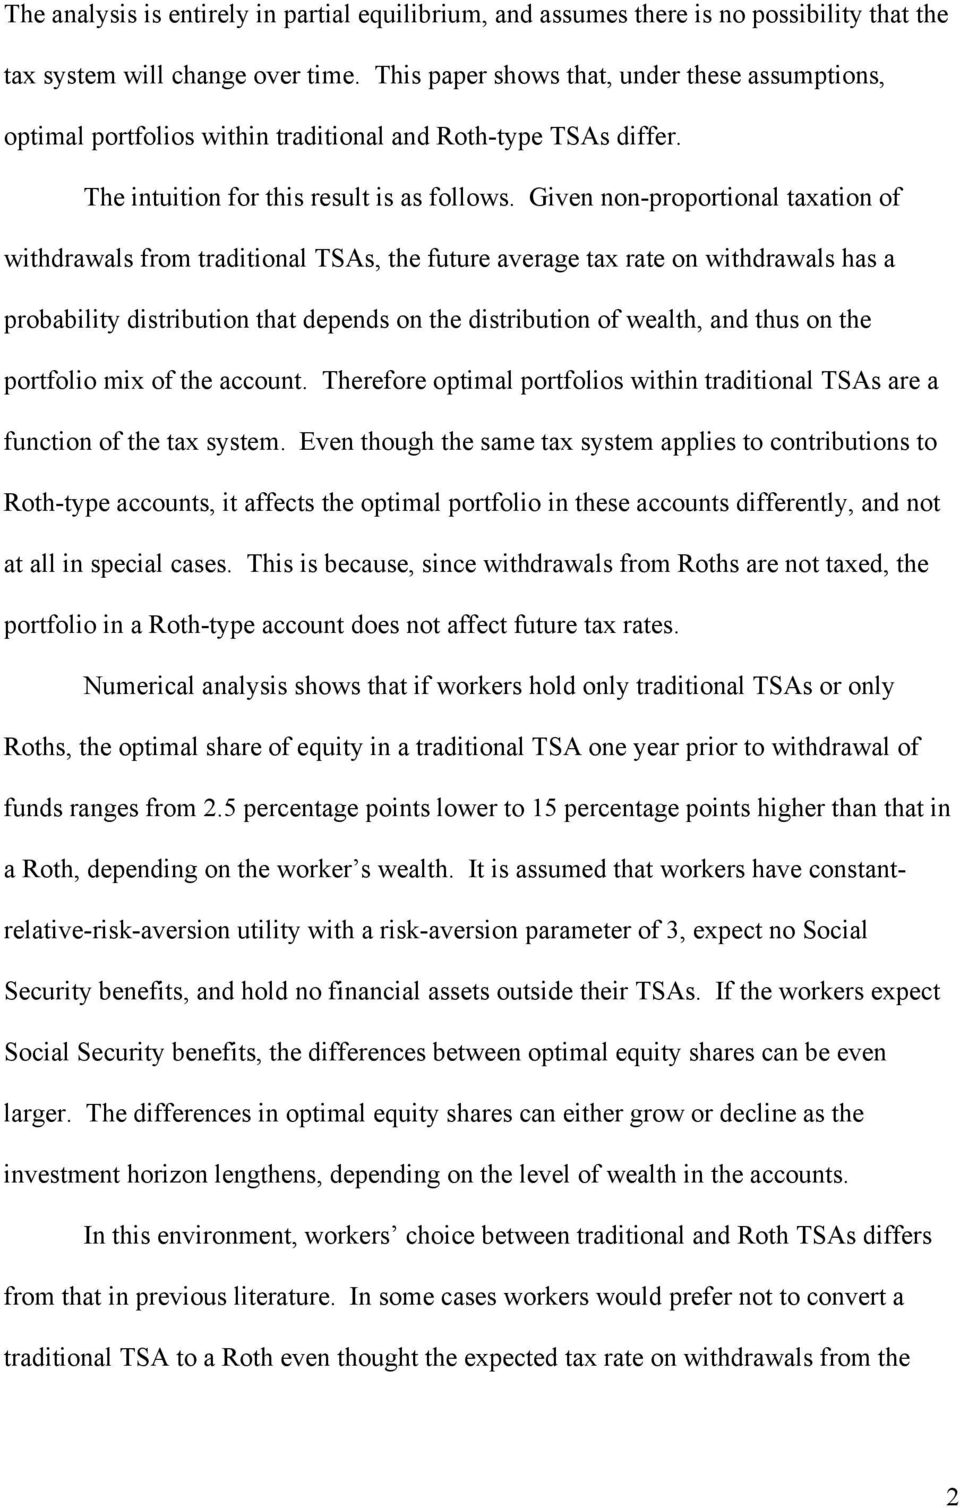 Given non-proportional taxation of withdrawals from traditional TSAs, the future average tax rate on withdrawals has a probability distribution that depends on the distribution of wealth, and thus on